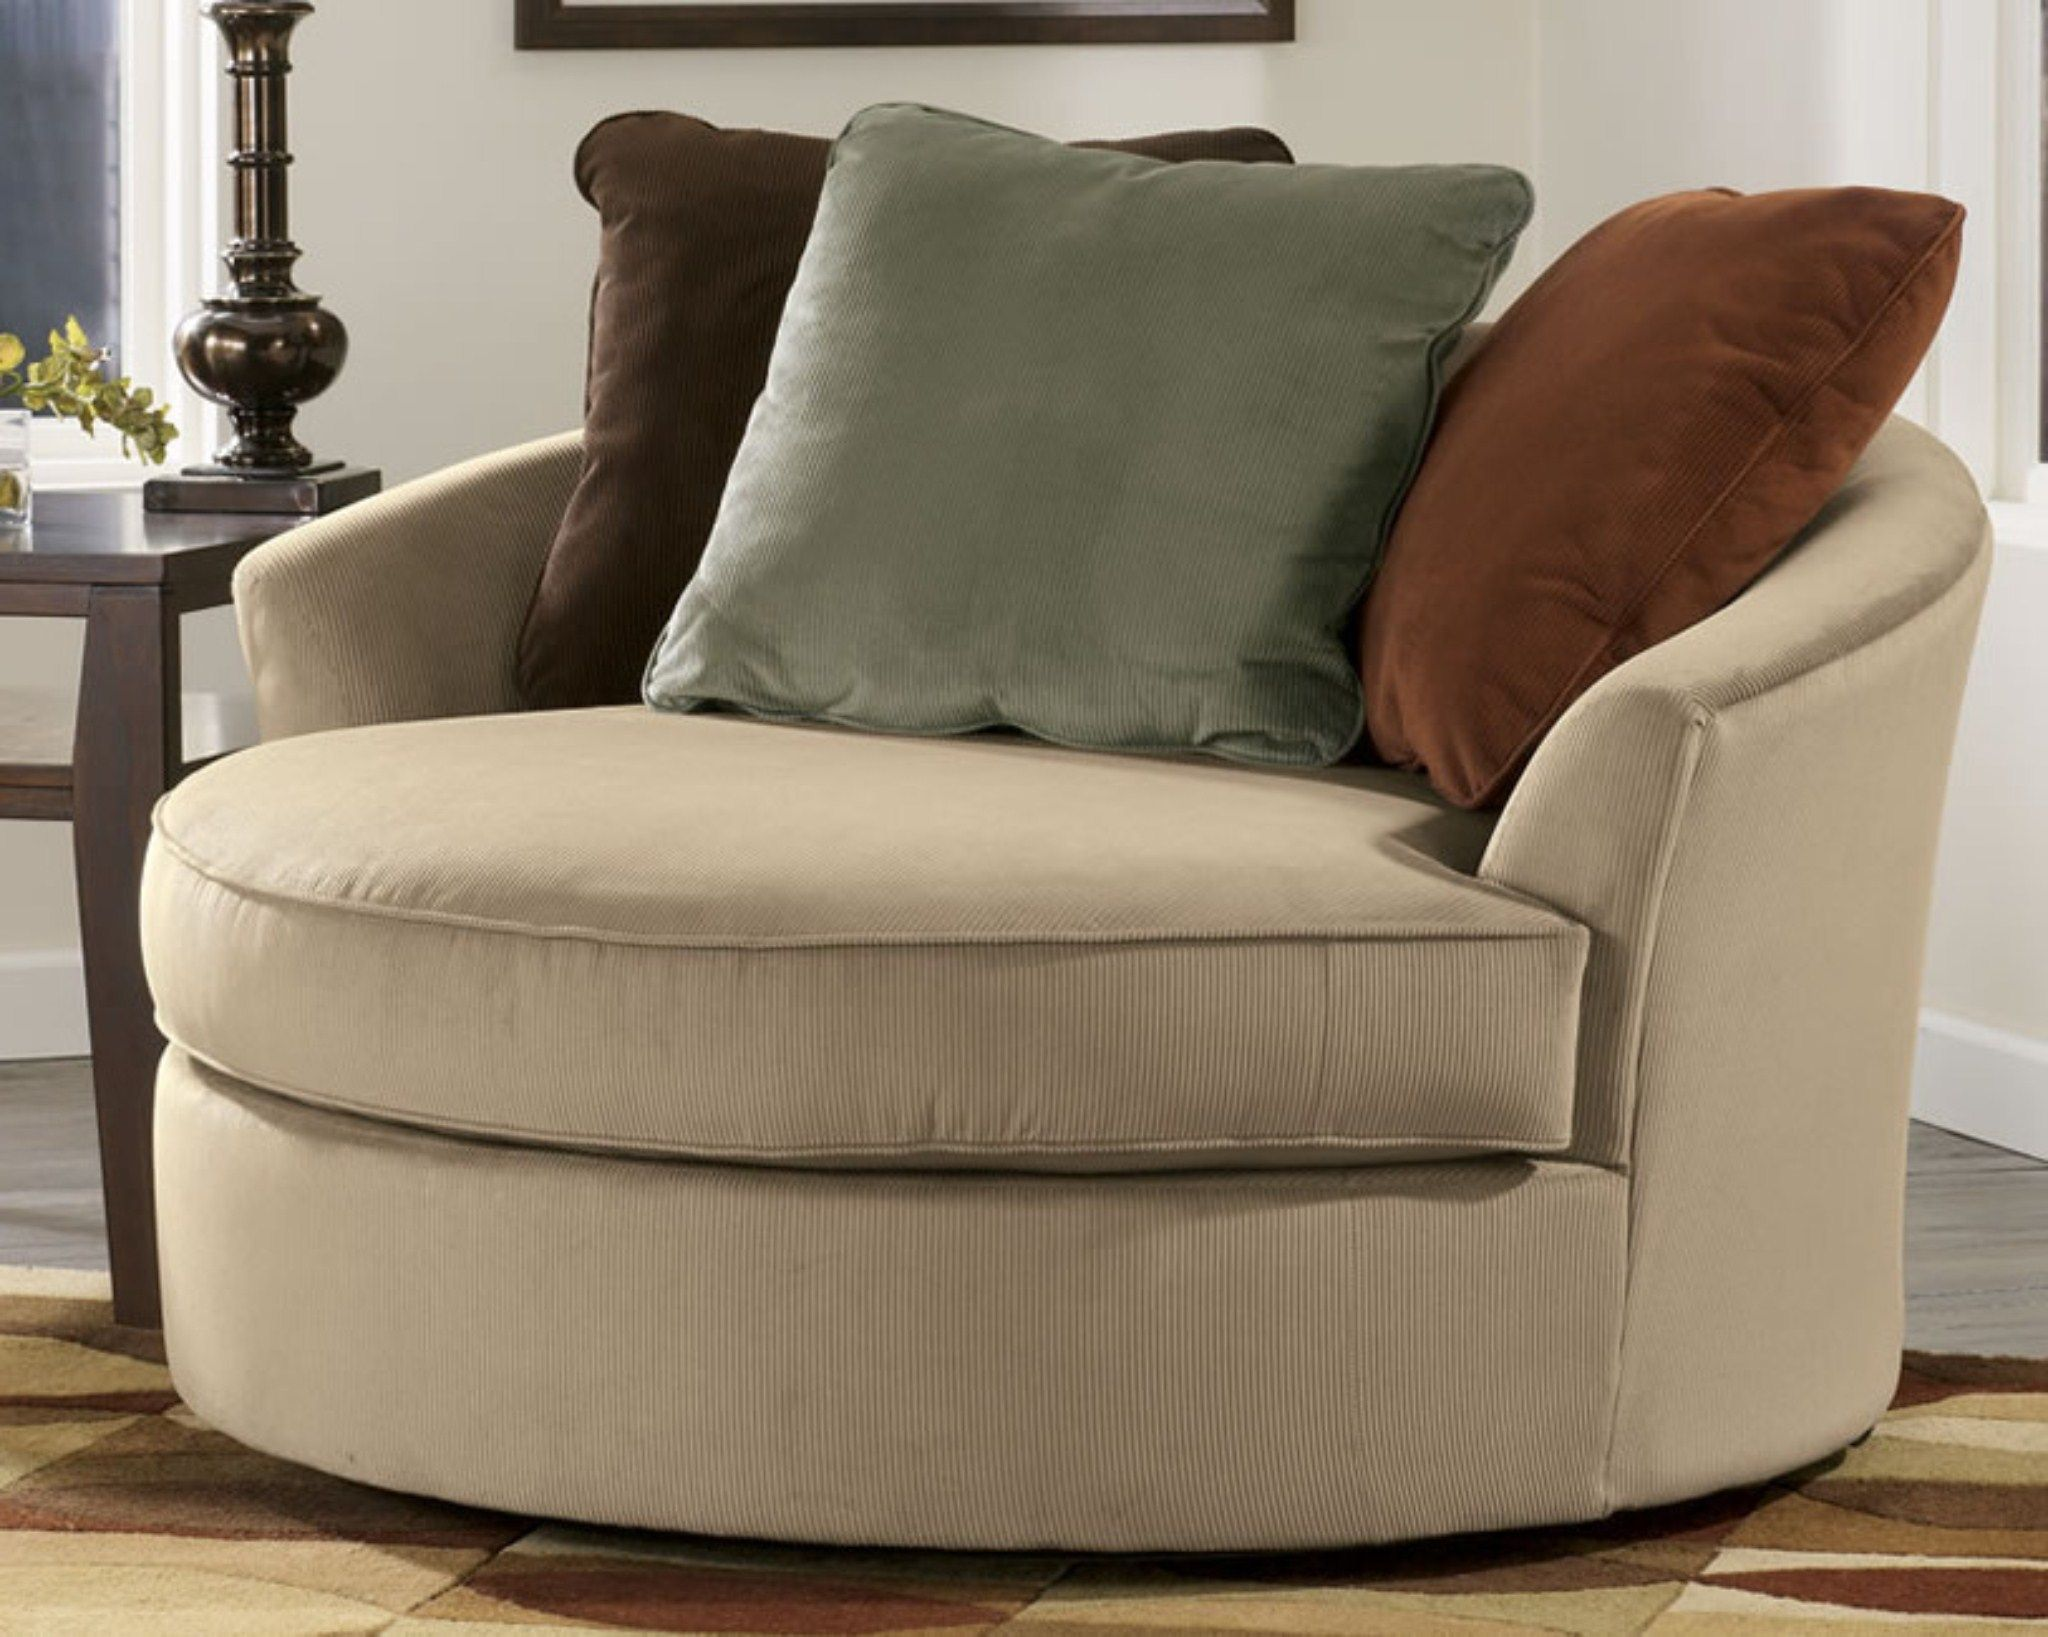 Swivel Rocking Chairs For Living Room Oversized Chair Living